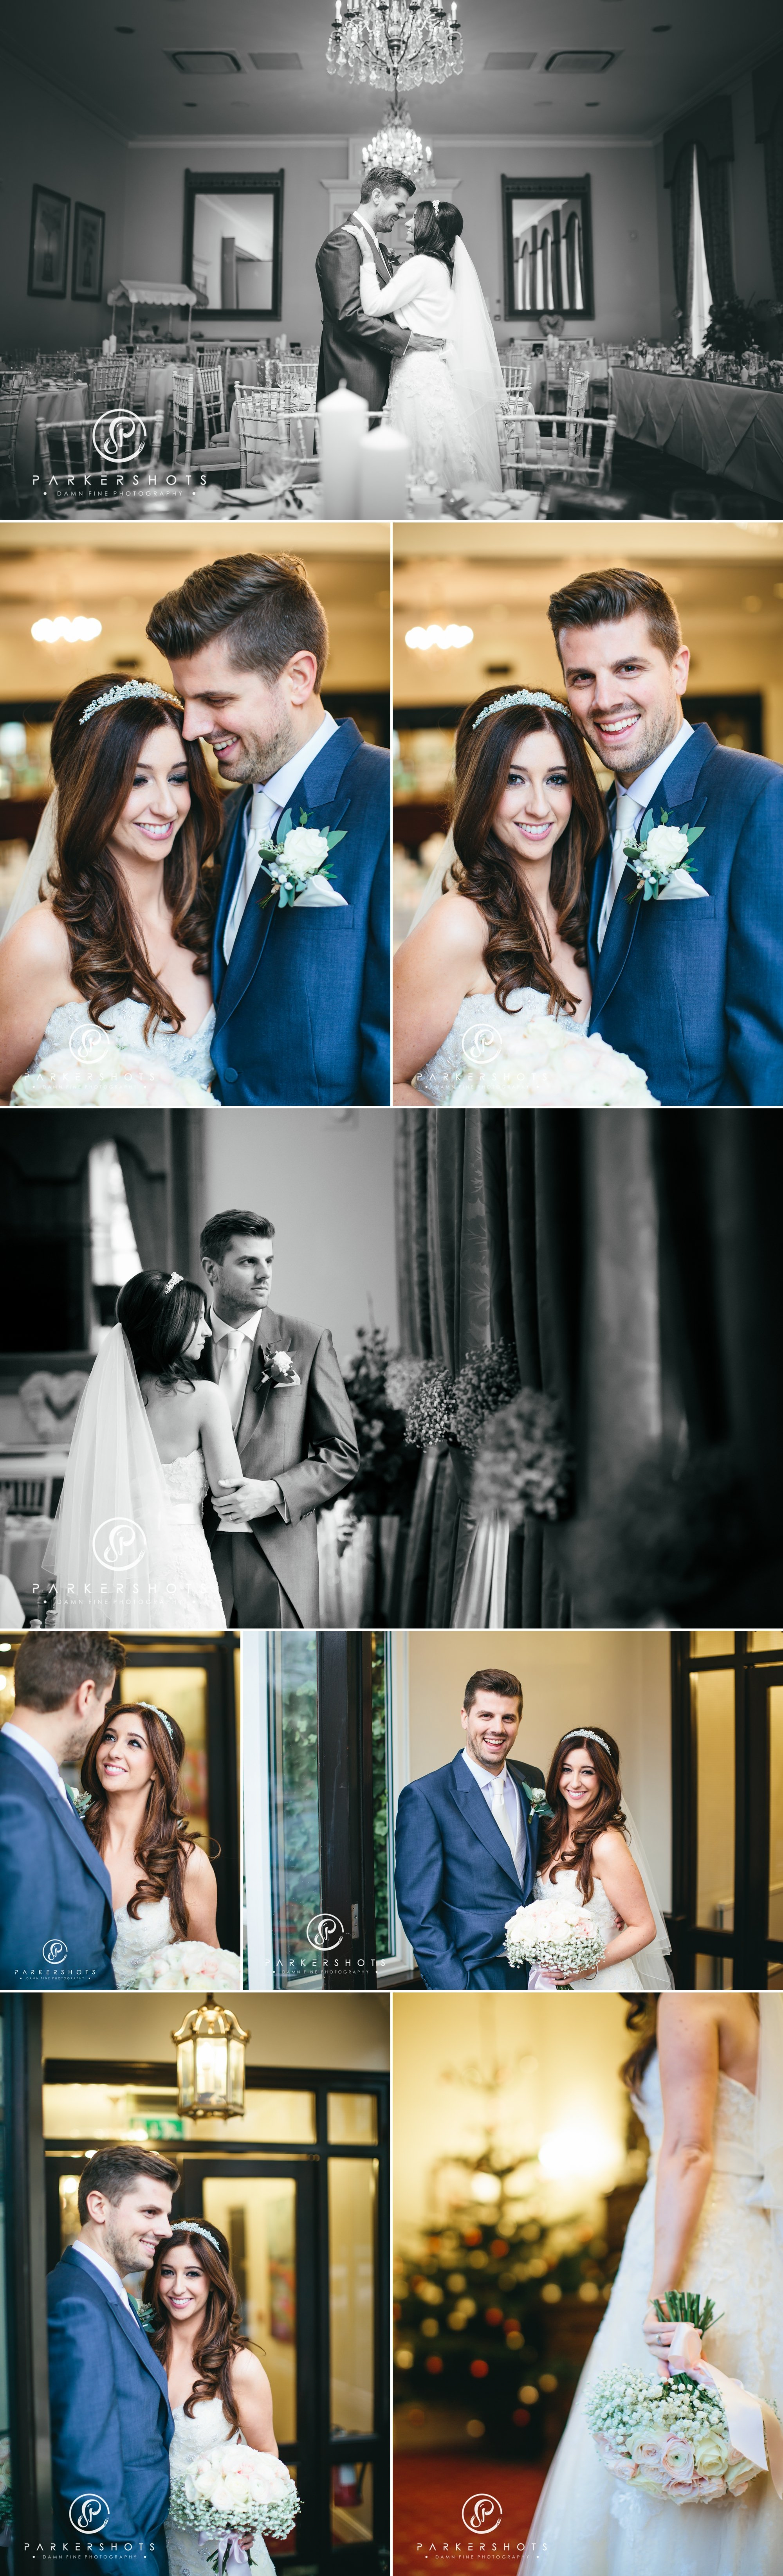 Wedding Photographer at The Spa Hotel (8)